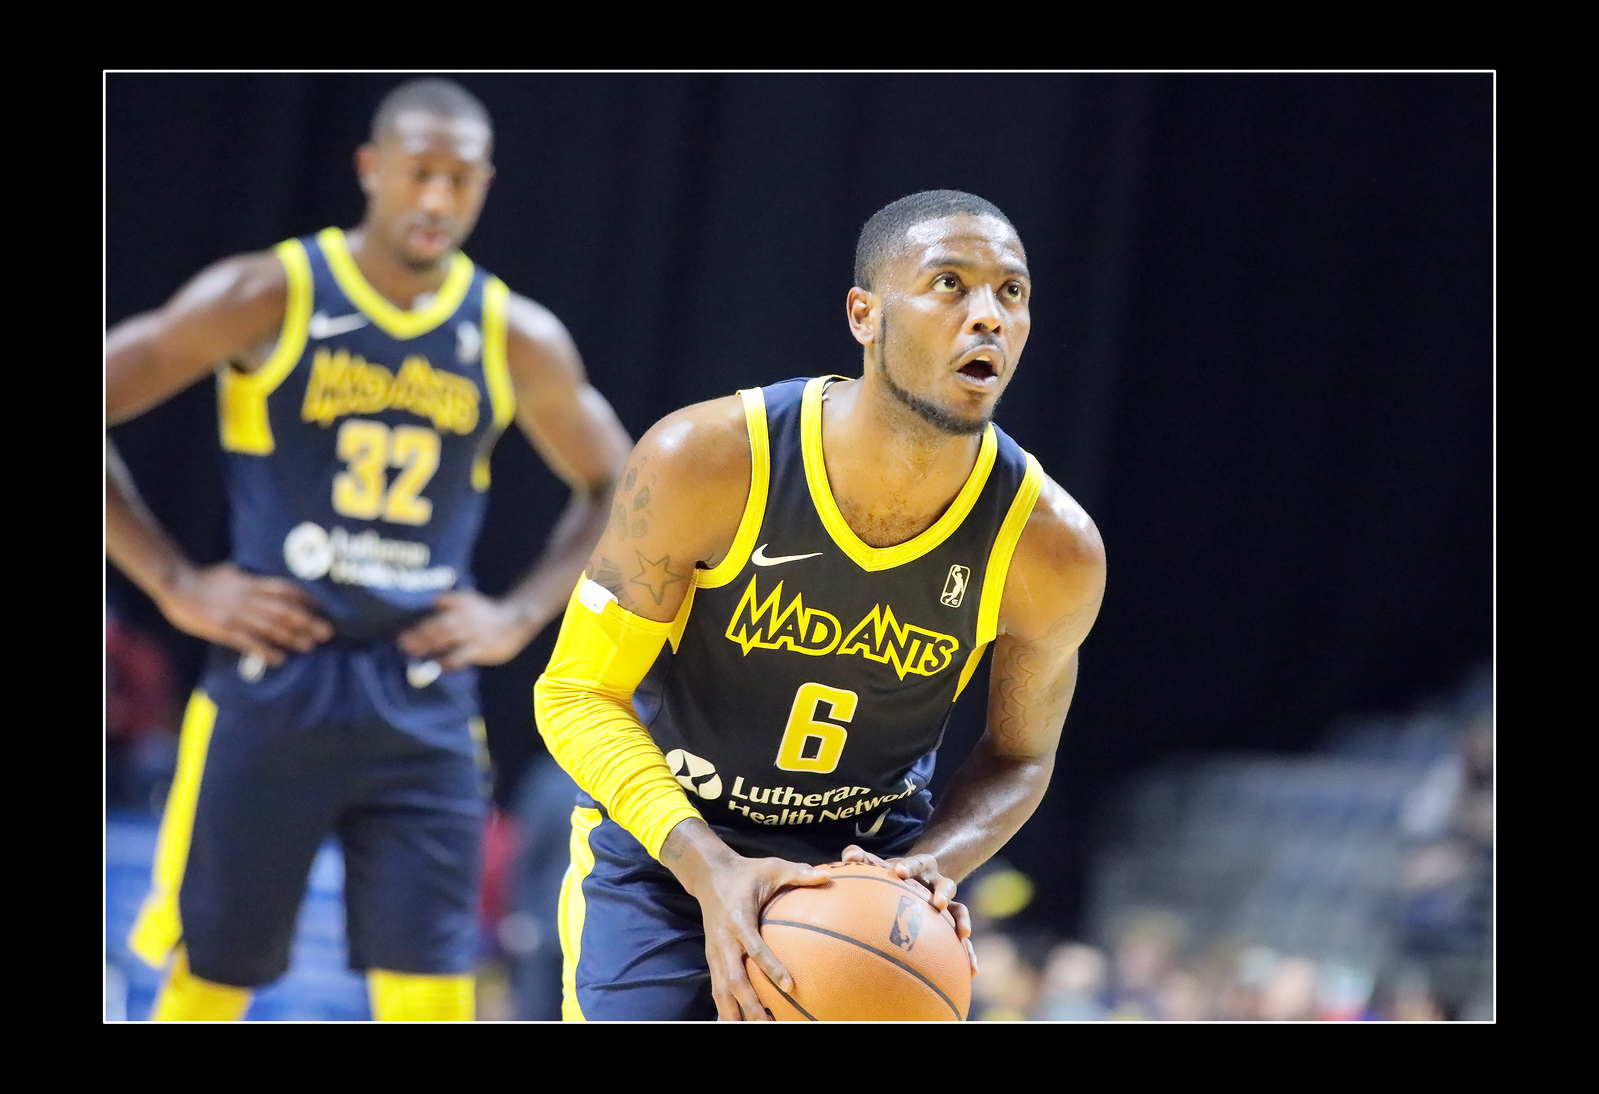 IMAGE: https://photos.smugmug.com/Sports-Events/Mad-Ants-Current-Season/Nov-29-2018/i-dbh9xFG/0/9fc42bf5/X3/FX8A3799a-X3.jpg